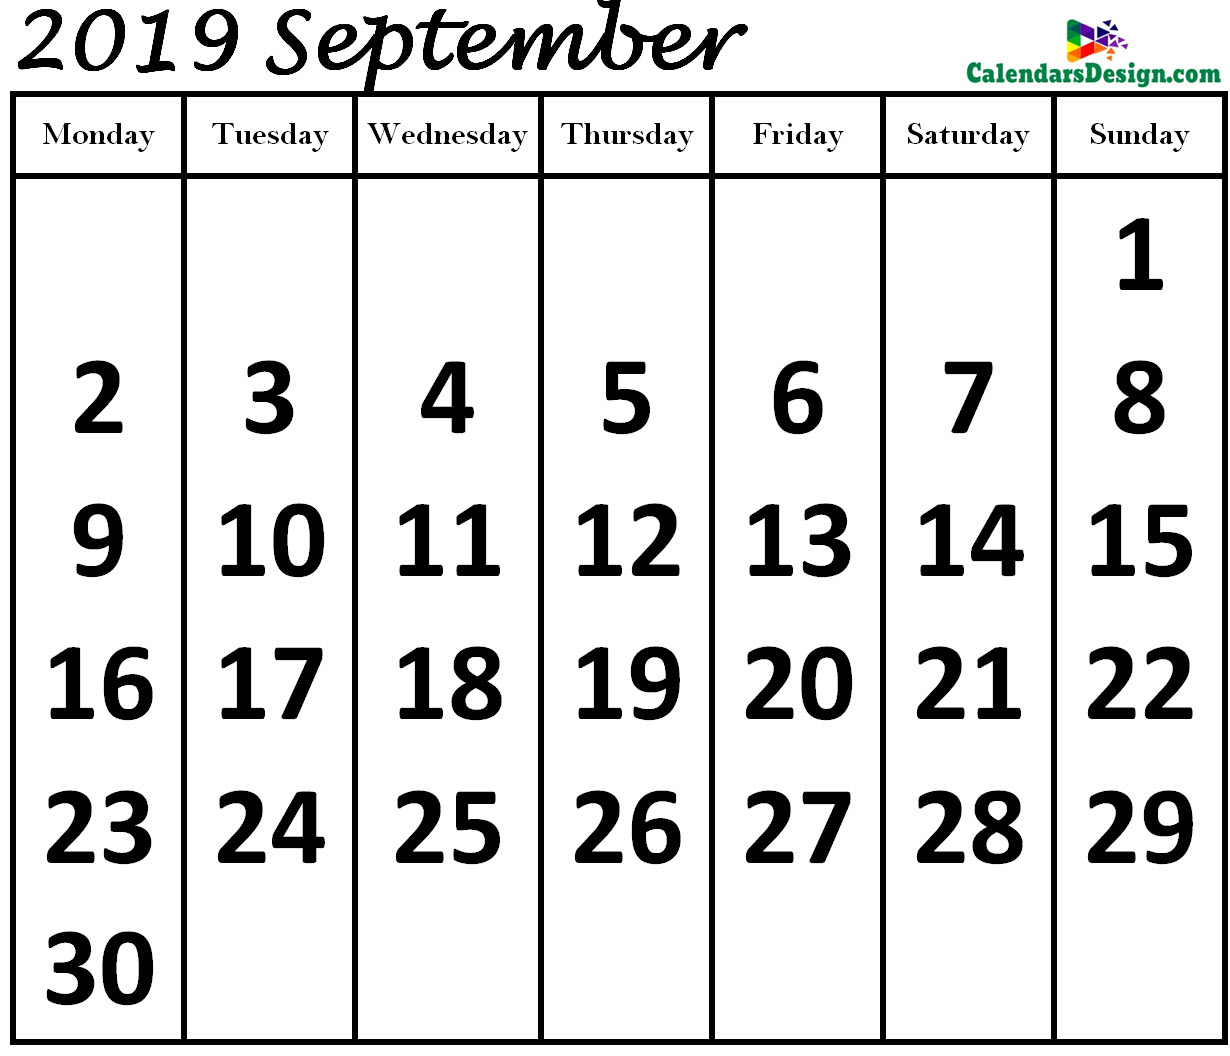 Print September 2019 Calendar in Page Format